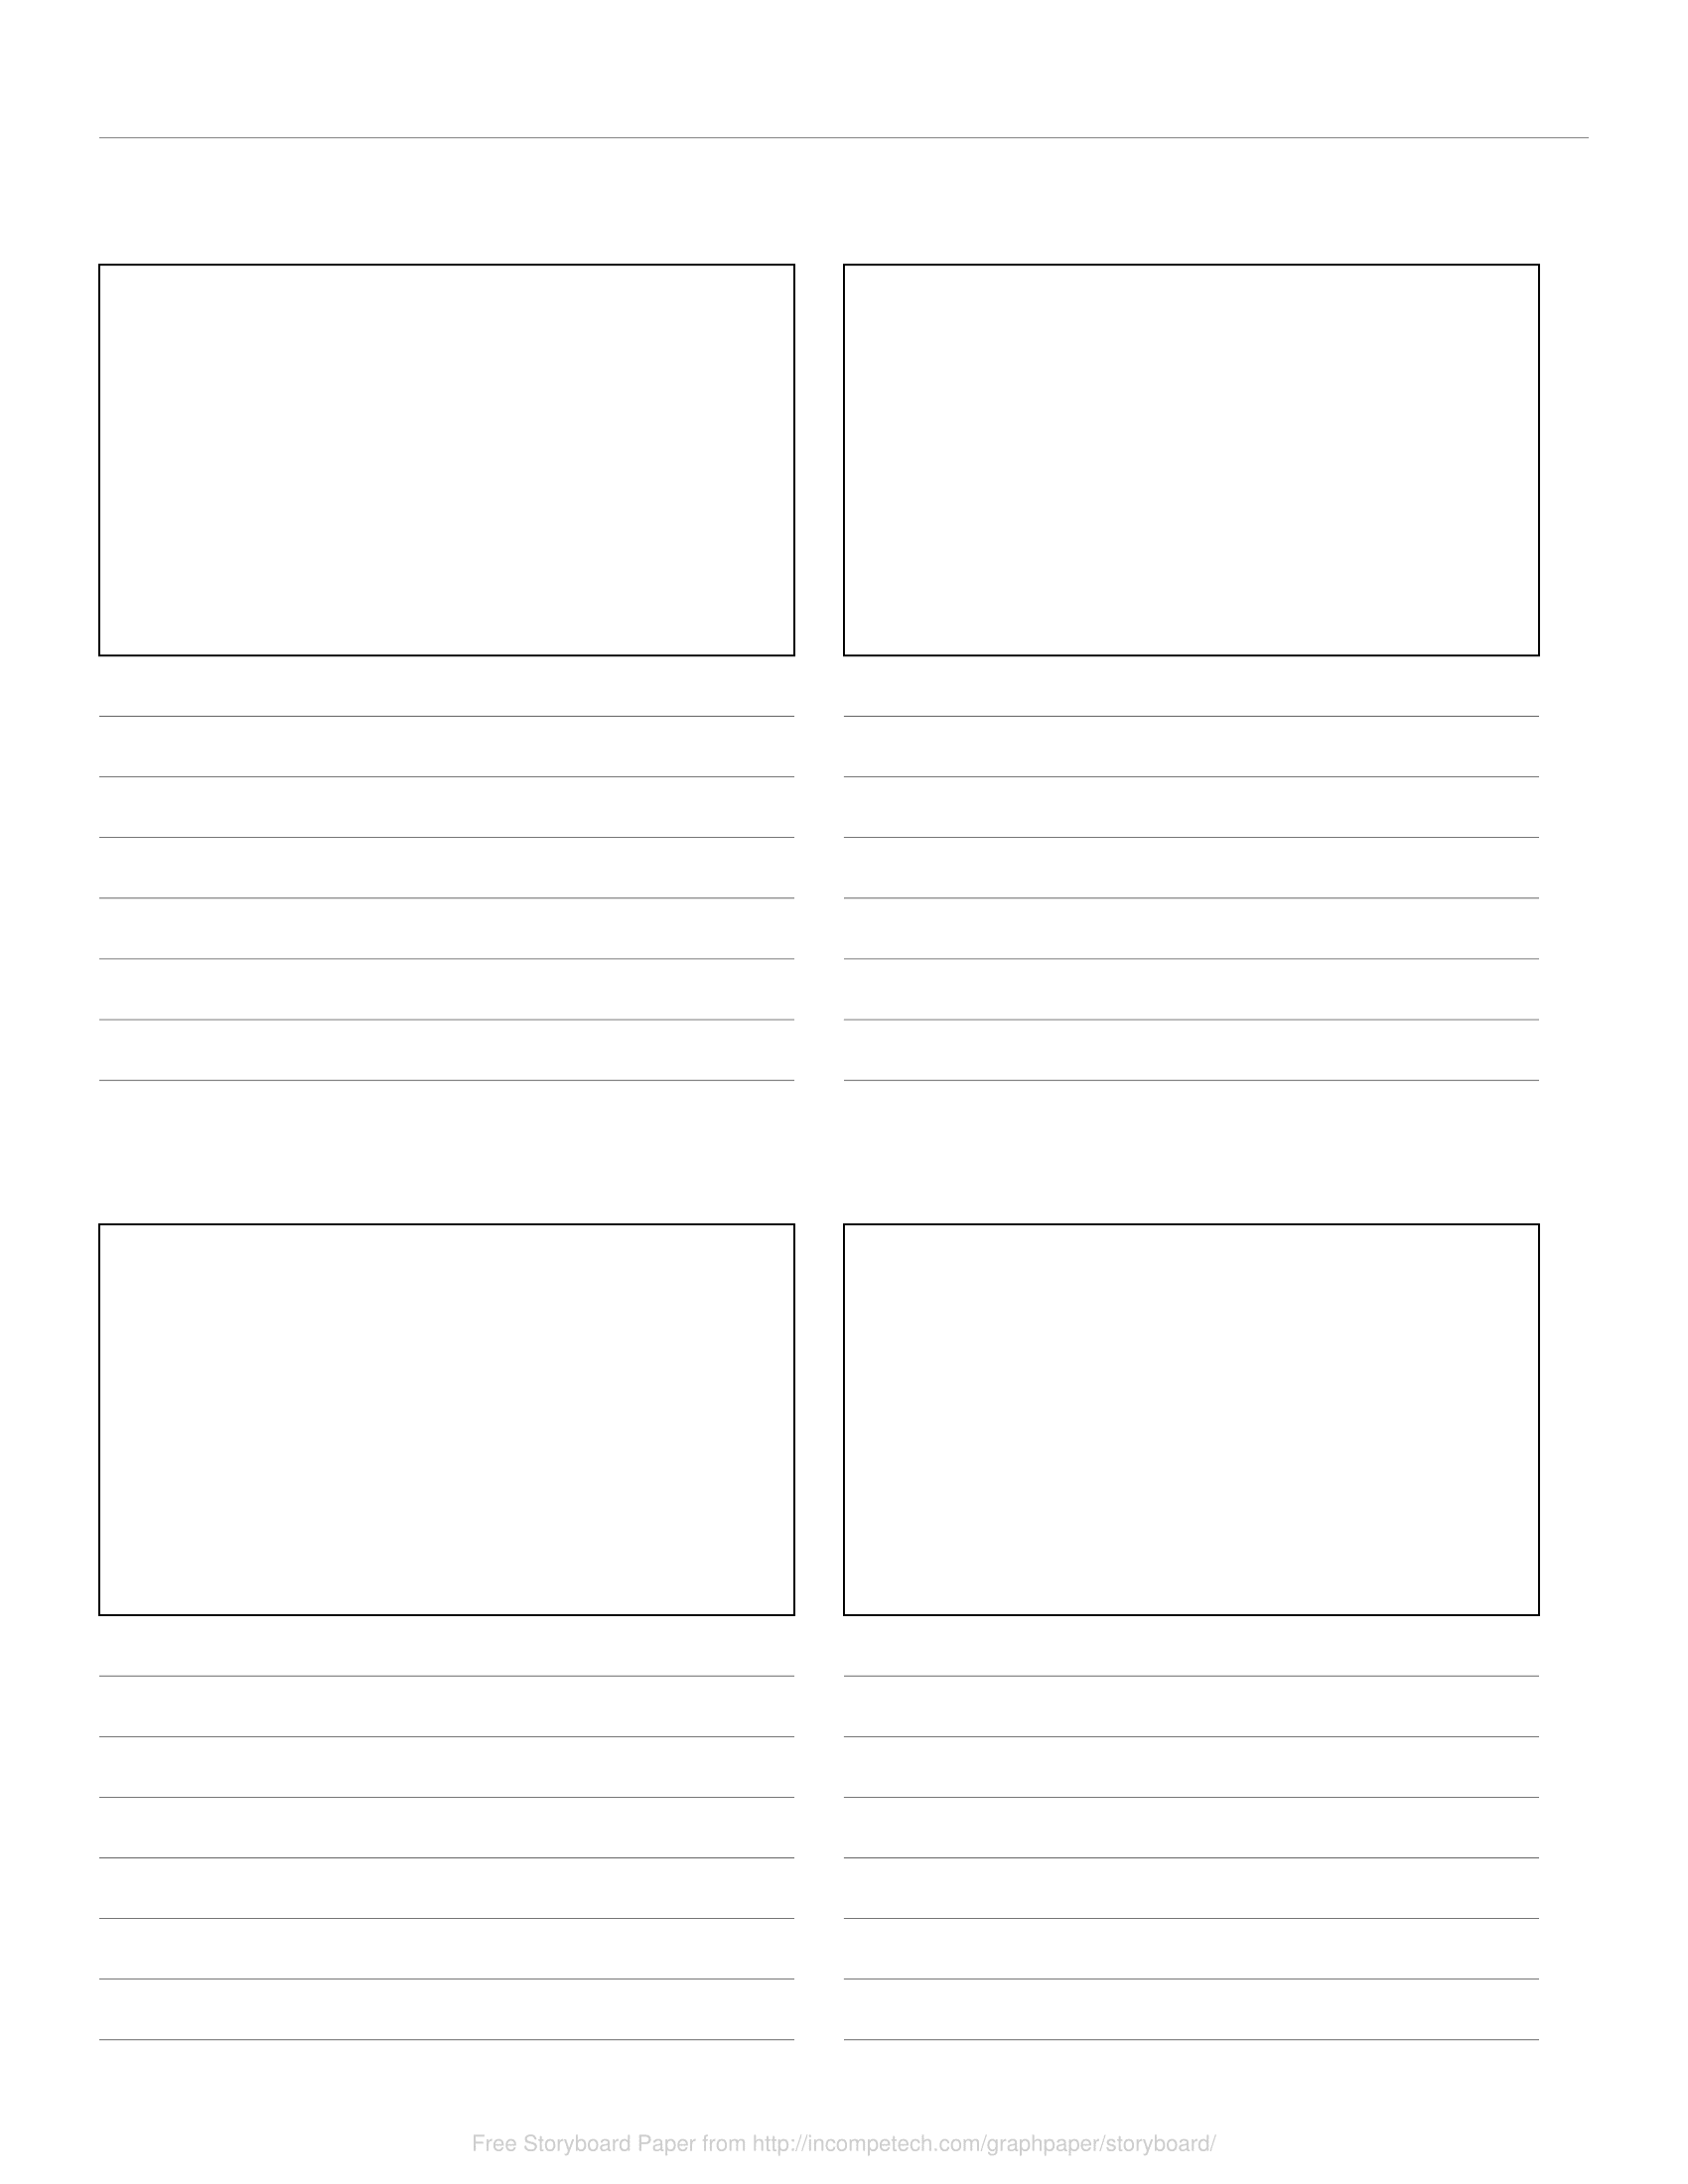 Free Online Graph Paper Storyboard